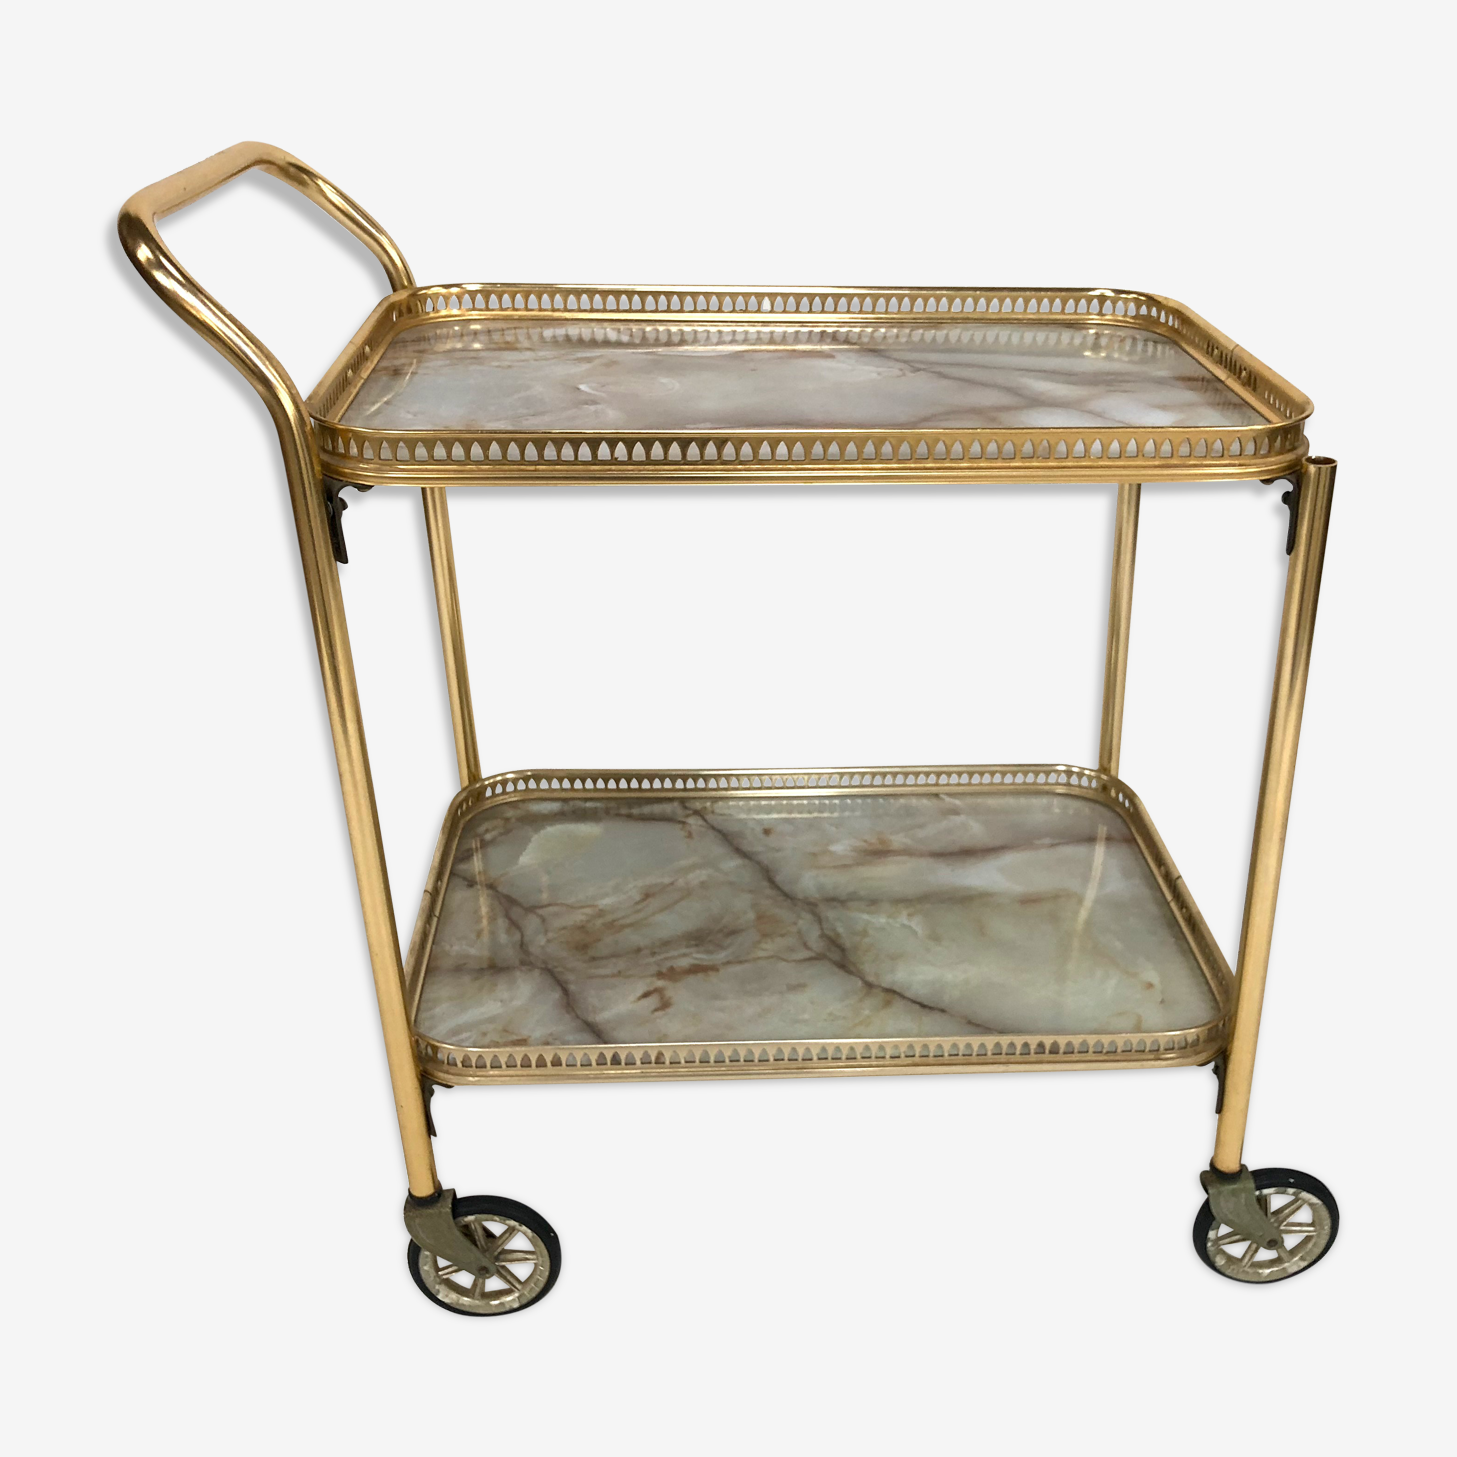 Brass Regency style serving table